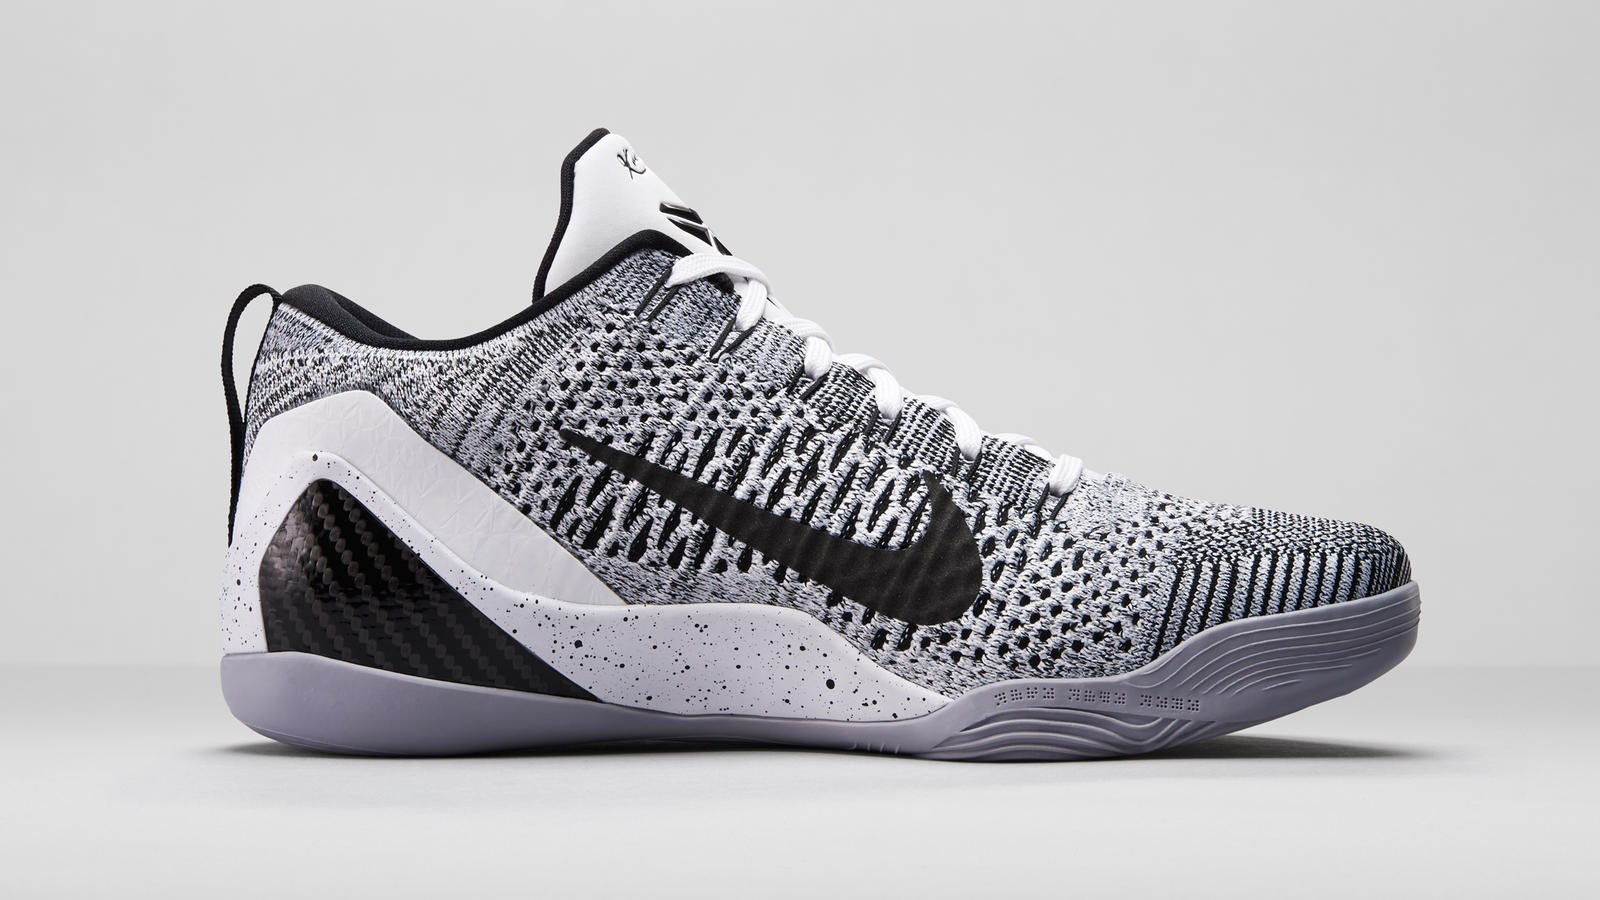 sports shoes 6862e 363e2 Inside Access: KOBE 9 Elite Low - Nike News